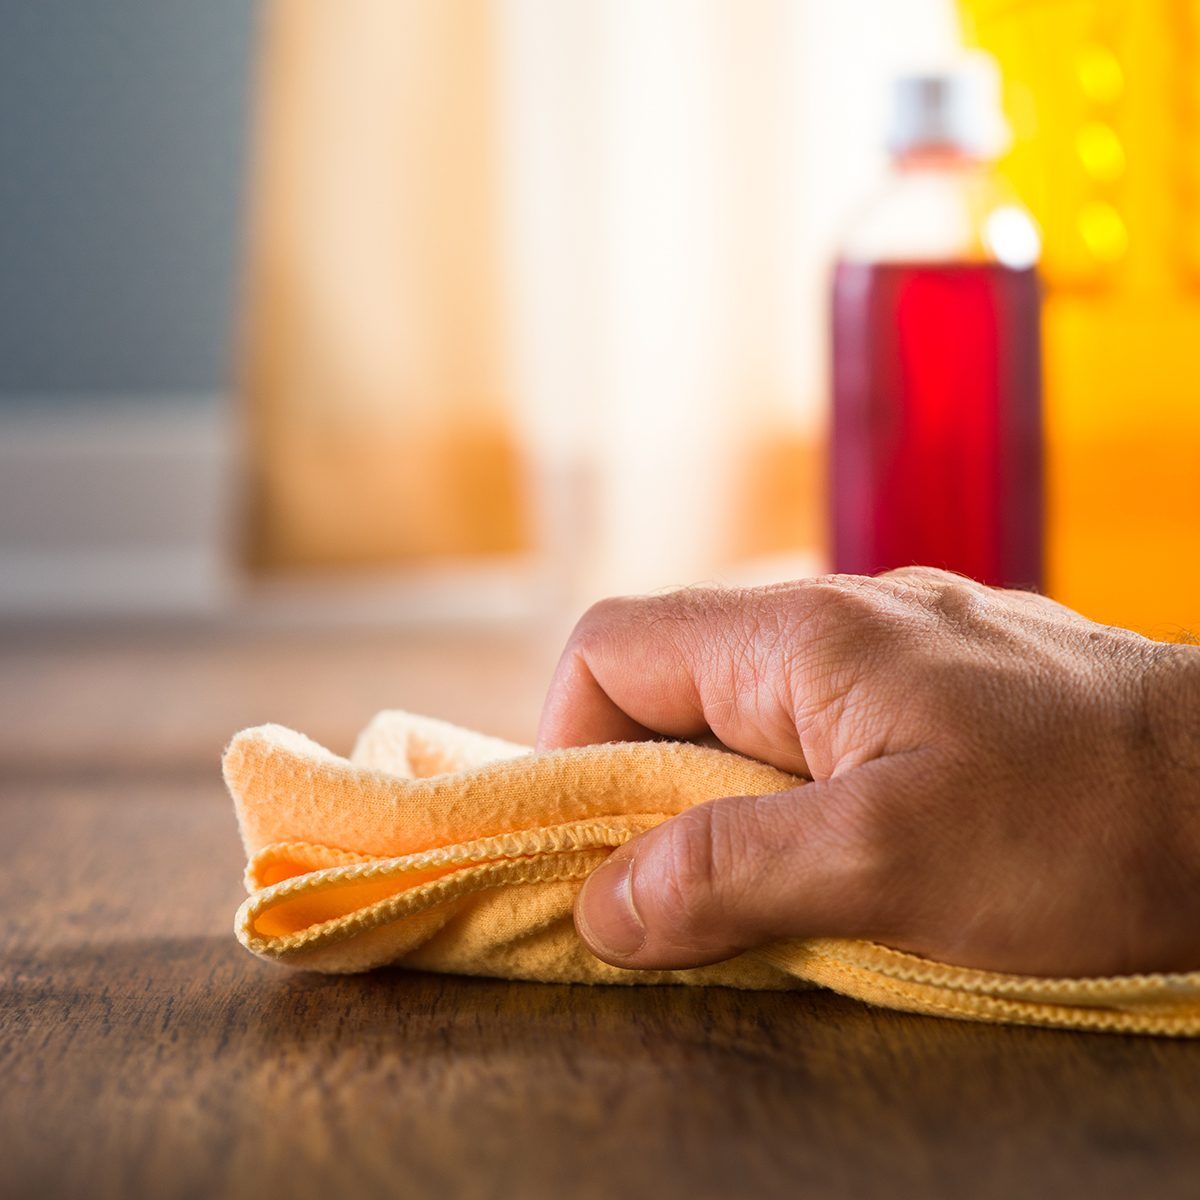 Male hand applying wood care products and cleaners on hardwood floor surface.; Shutterstock ID 221628484